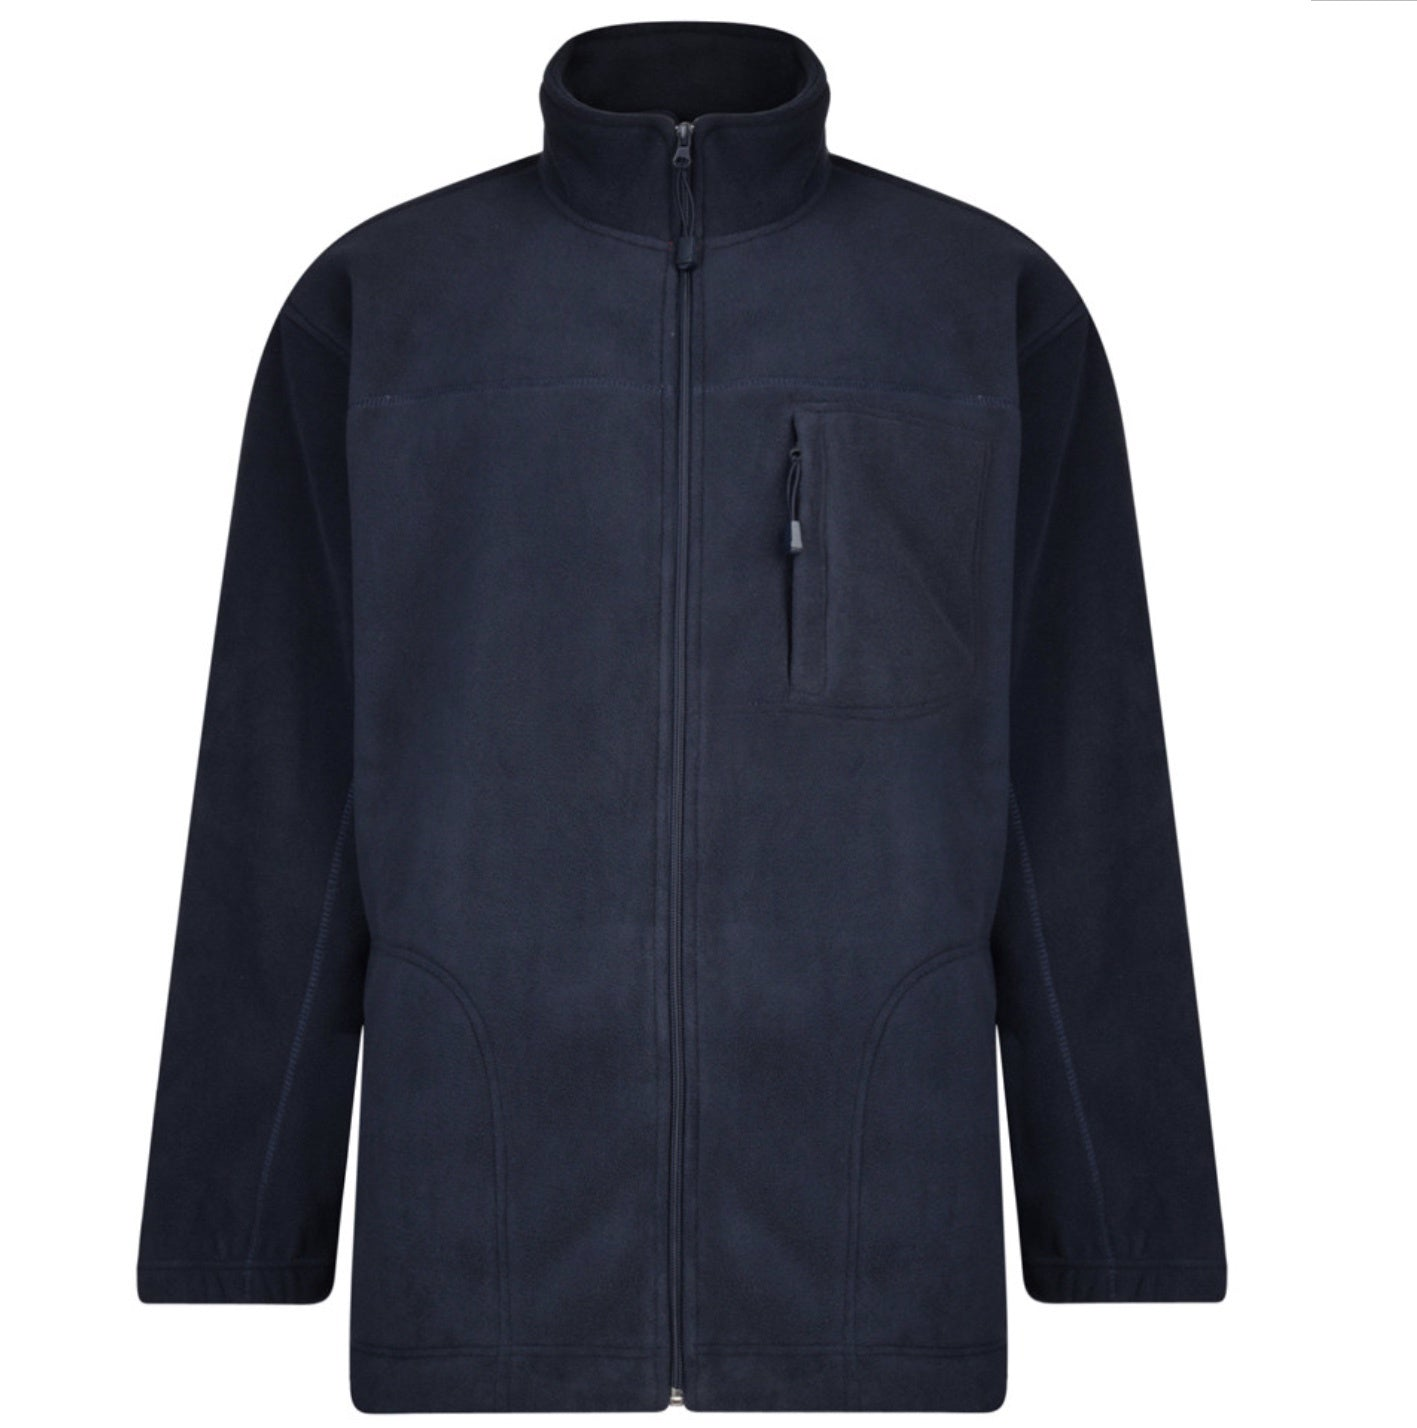 Espionage Quality Bonded Fleece Jacket FL014